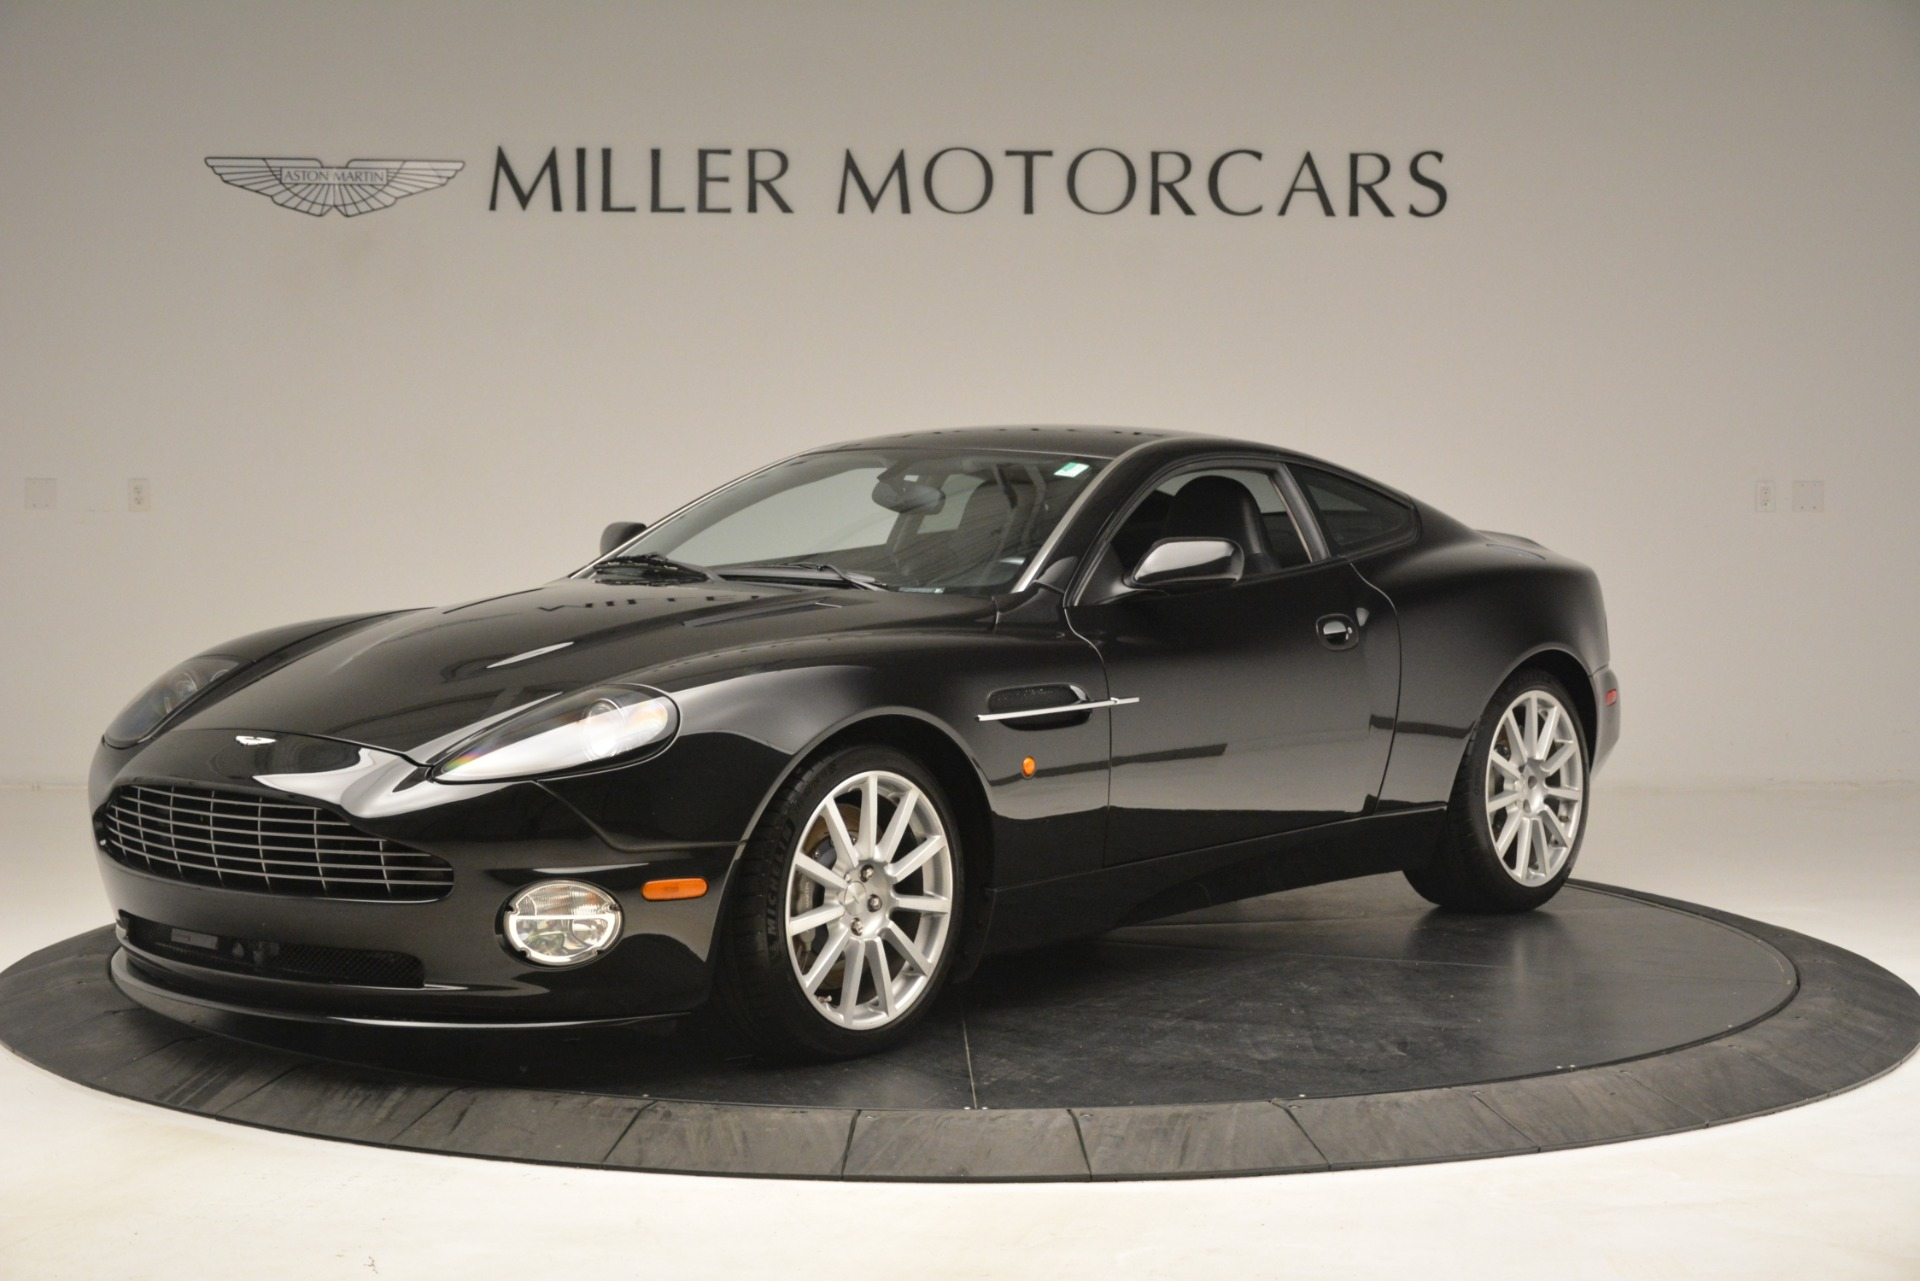 Used 2005 Aston Martin V12 Vanquish S Coupe For Sale 95900 In Greenwich, CT